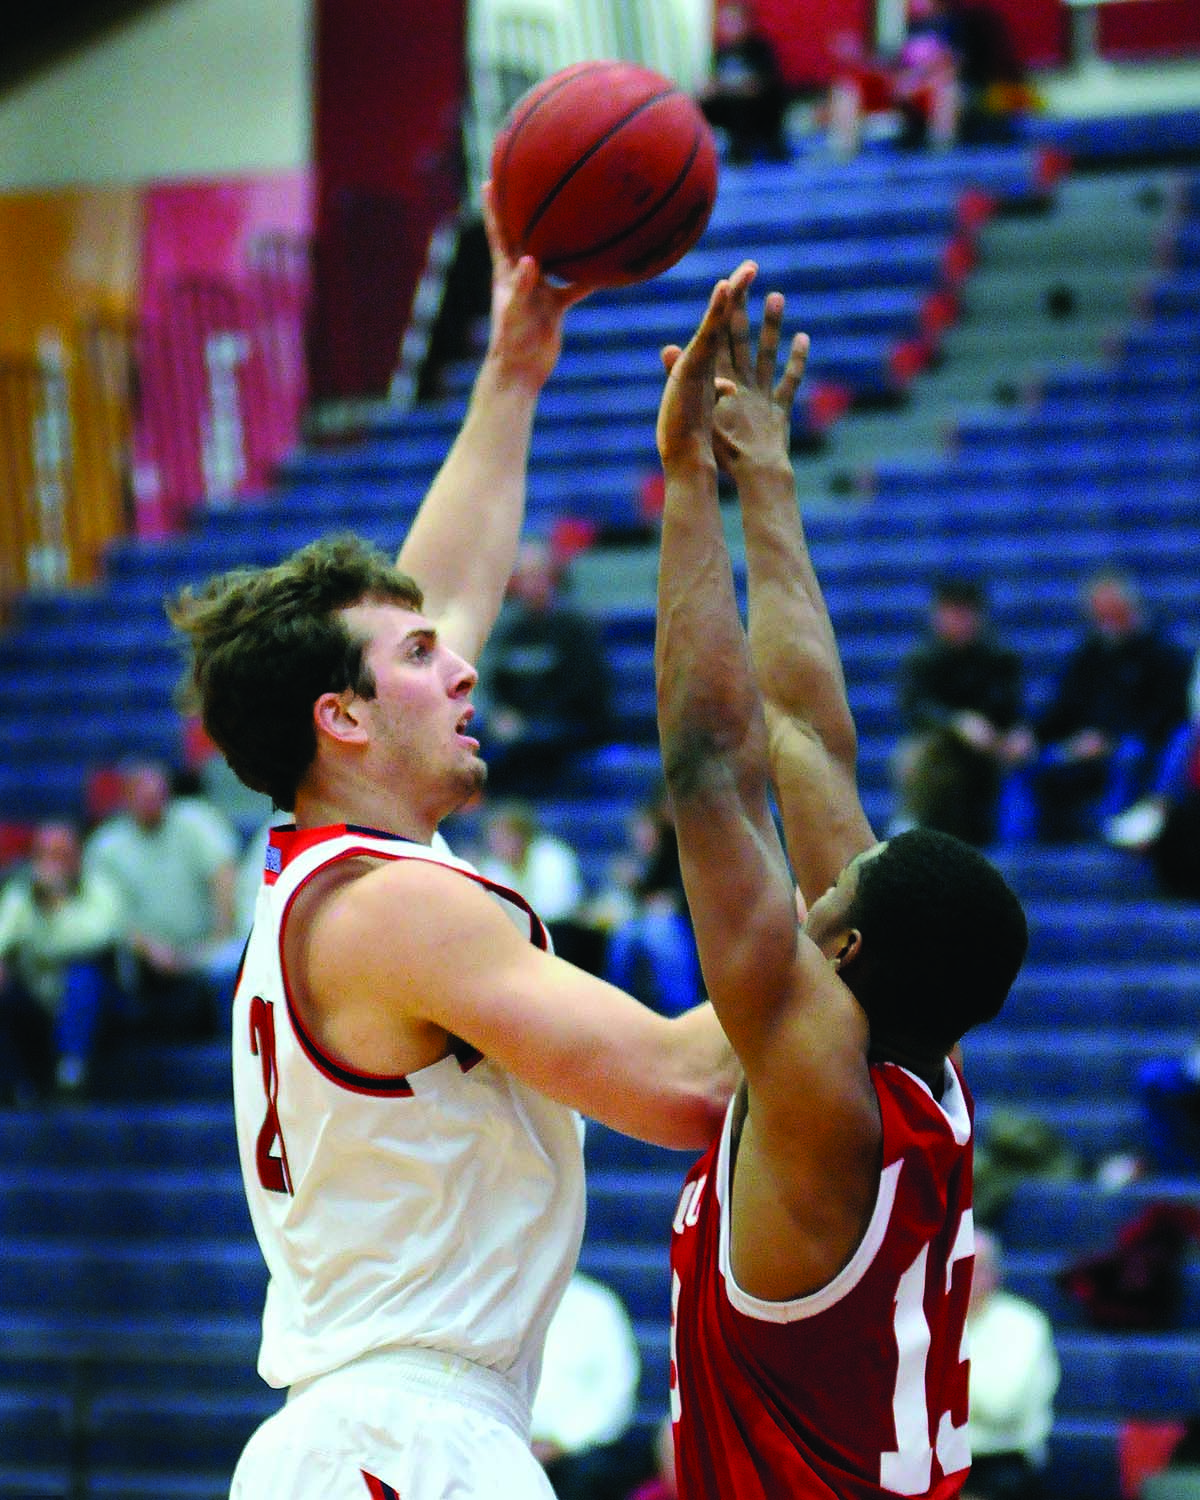 Dylan Edgar '15 will play for the Niagara River Lions of the National Basketball League of Canada.